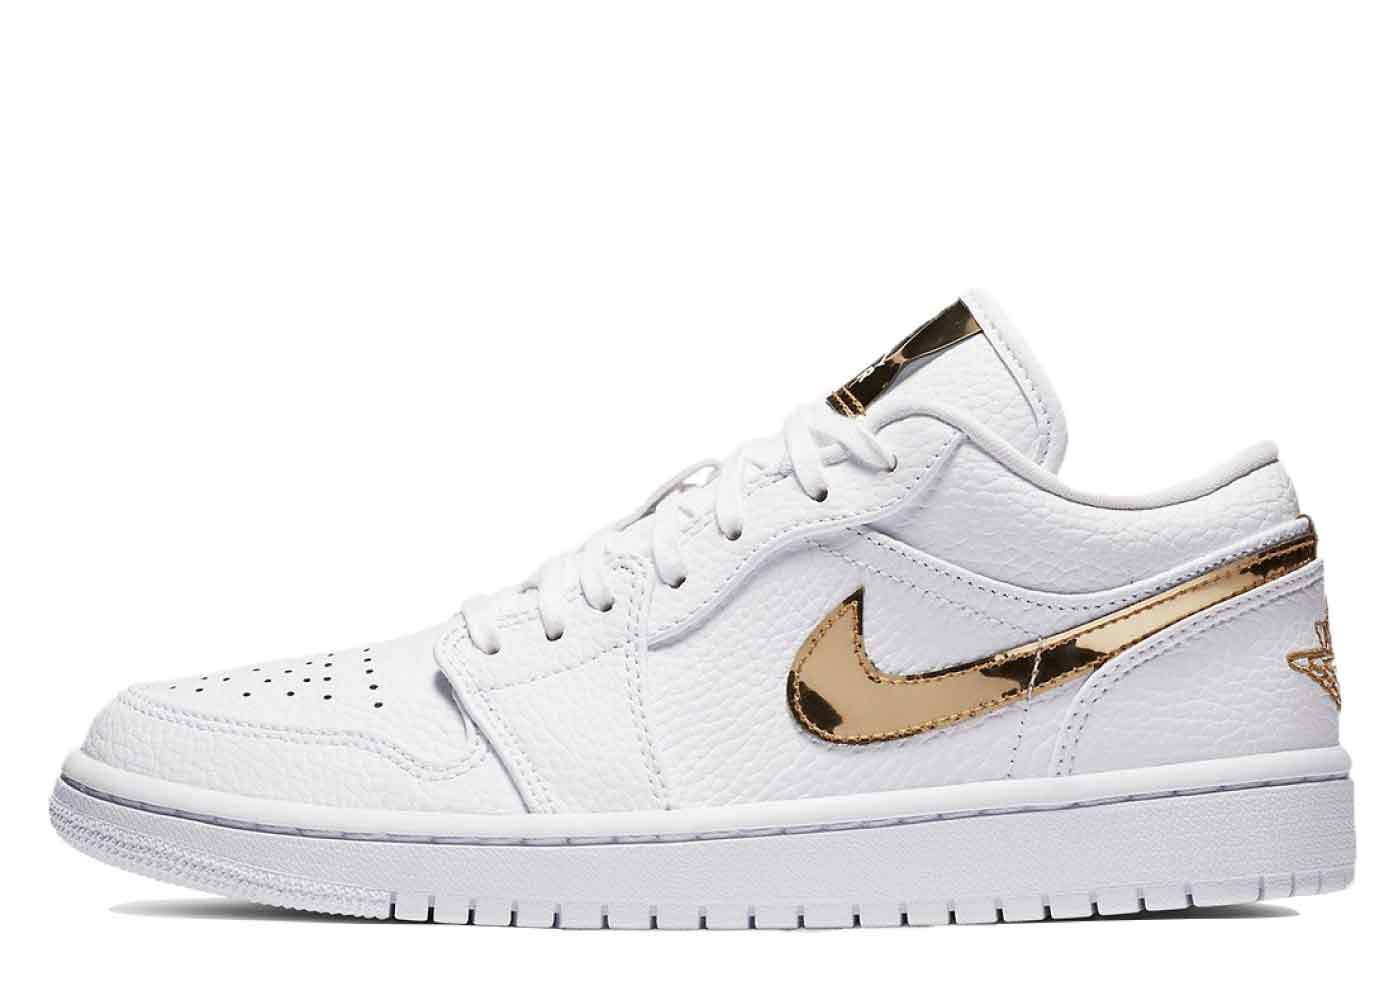 Nike Air Jordan 1 Low SE White Metallic Gold Womensの写真